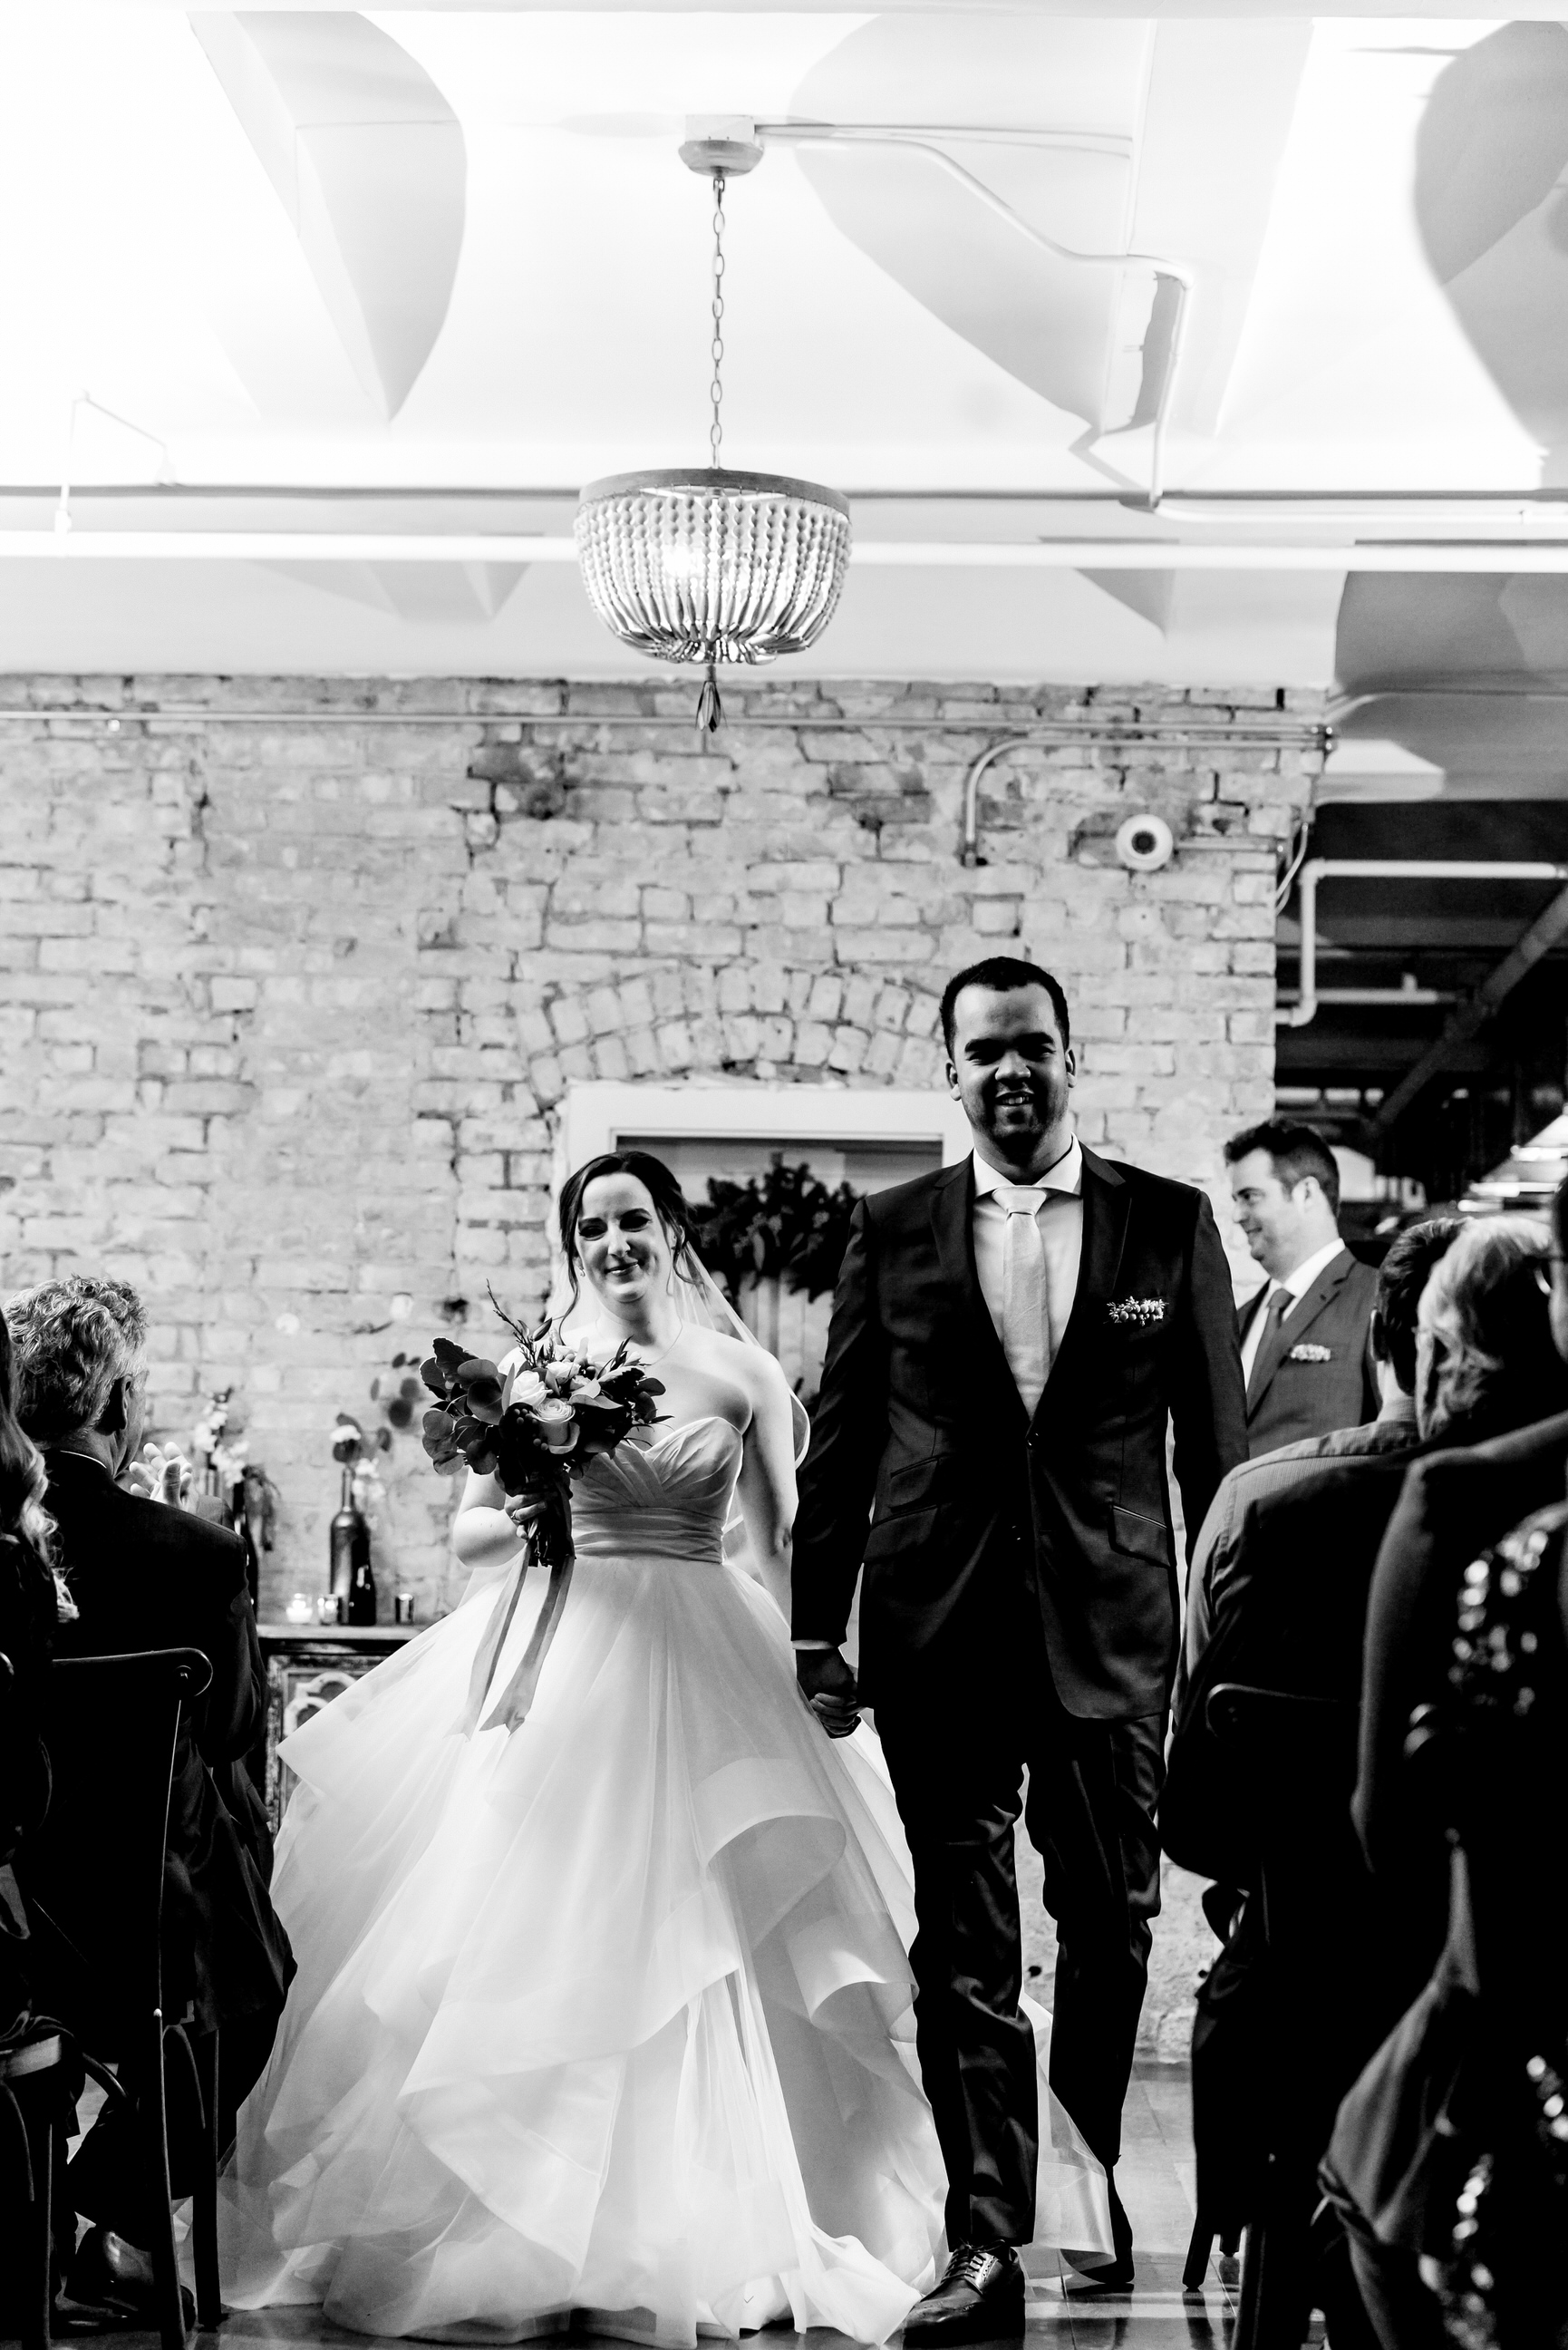 Megan and Alec - Lumber Exchange Wedding Sawyer Dylan Room - Highlights BW-206.jpg